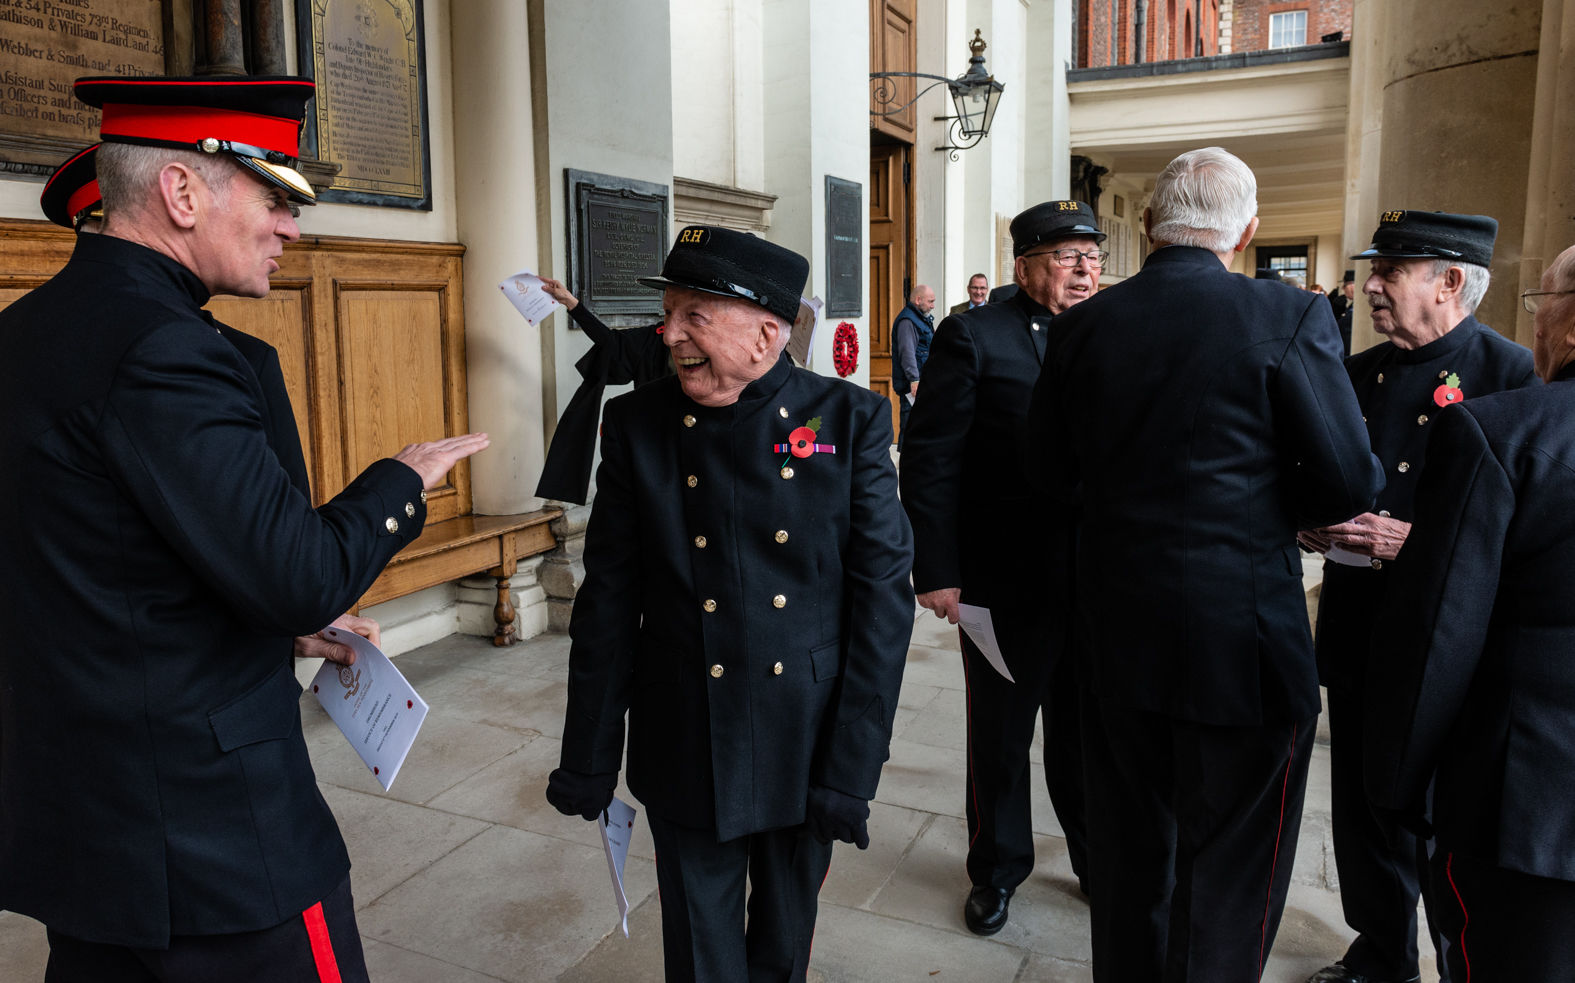 Military Conversations, Royal Hospital Chelsea